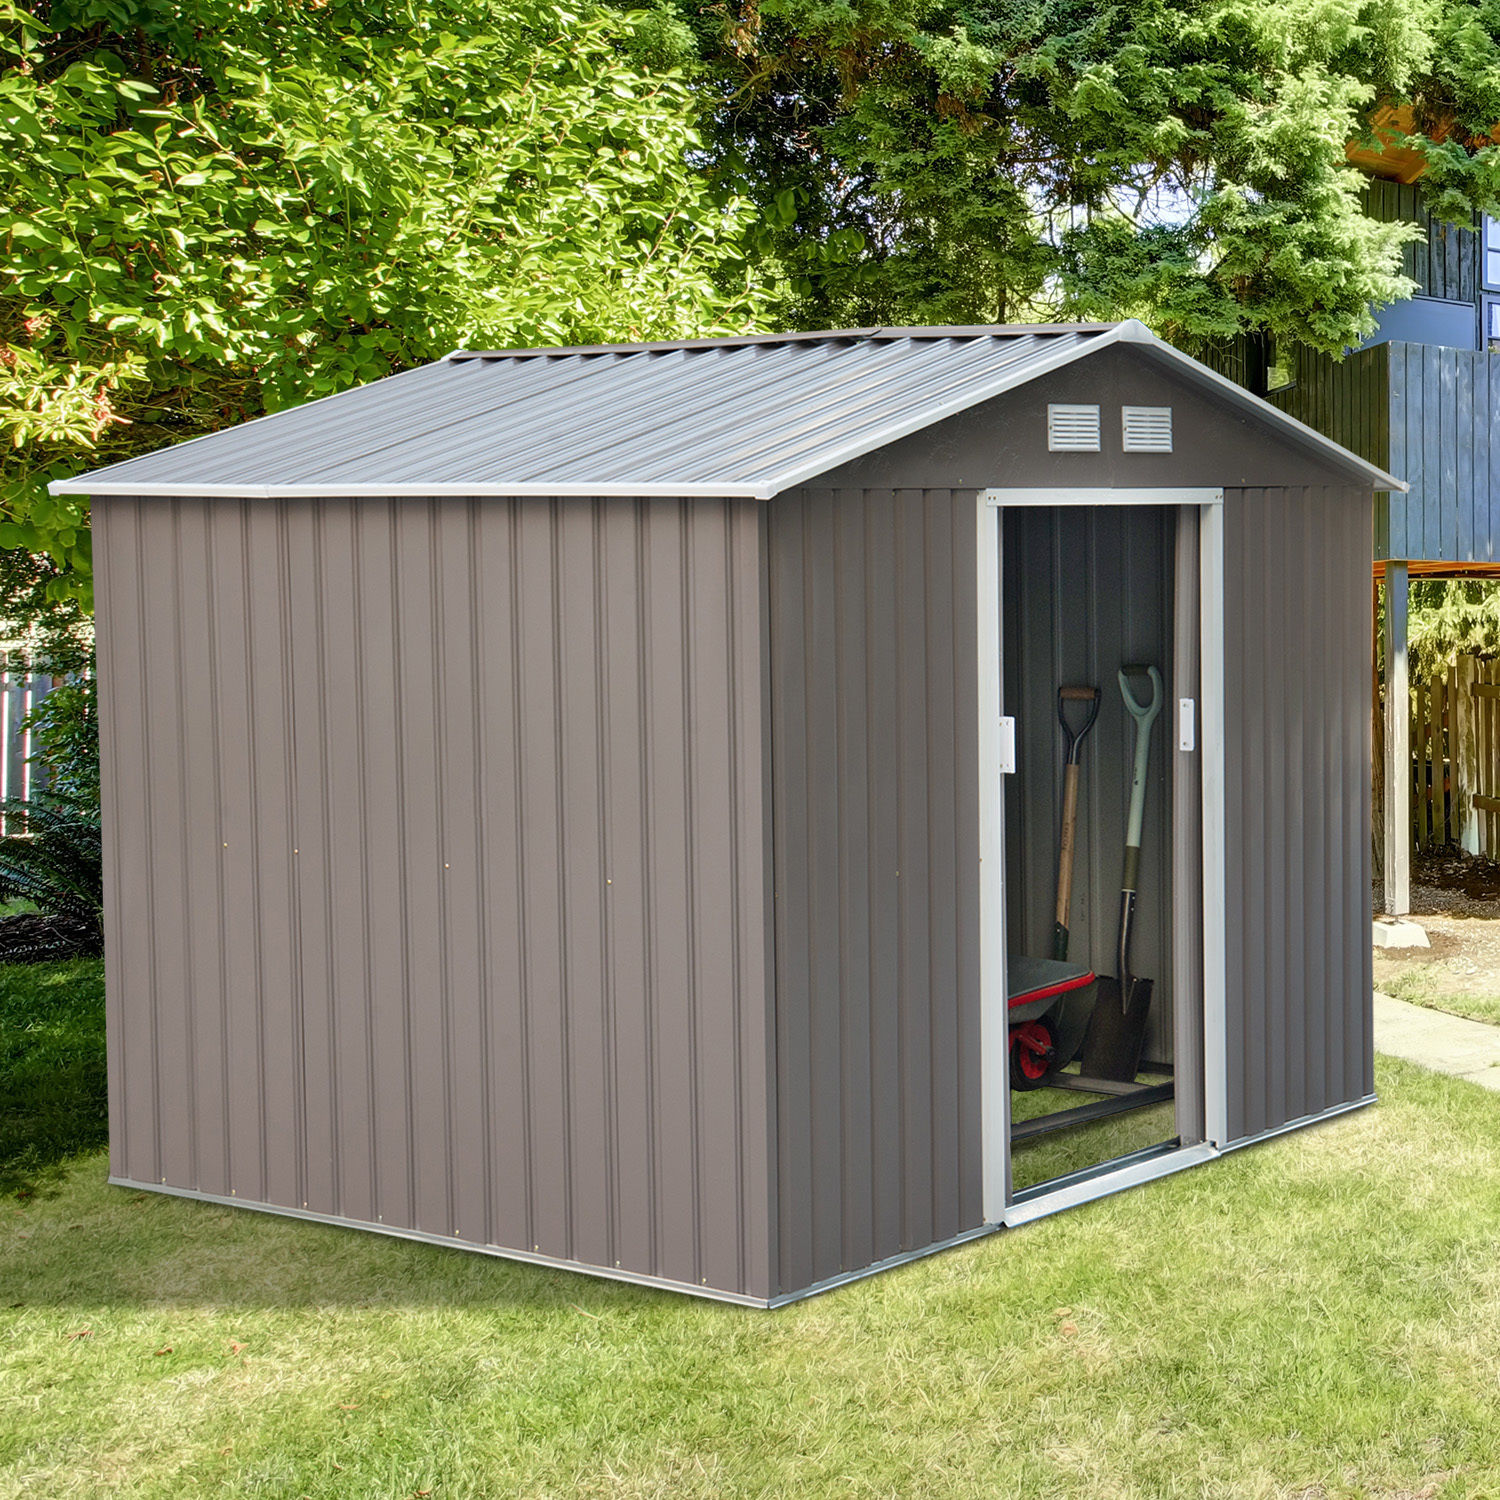 outsunny 9 x6 metal garden storage shed steel tool house utility rh ebay com Storage Houses Live In storage house for backyard